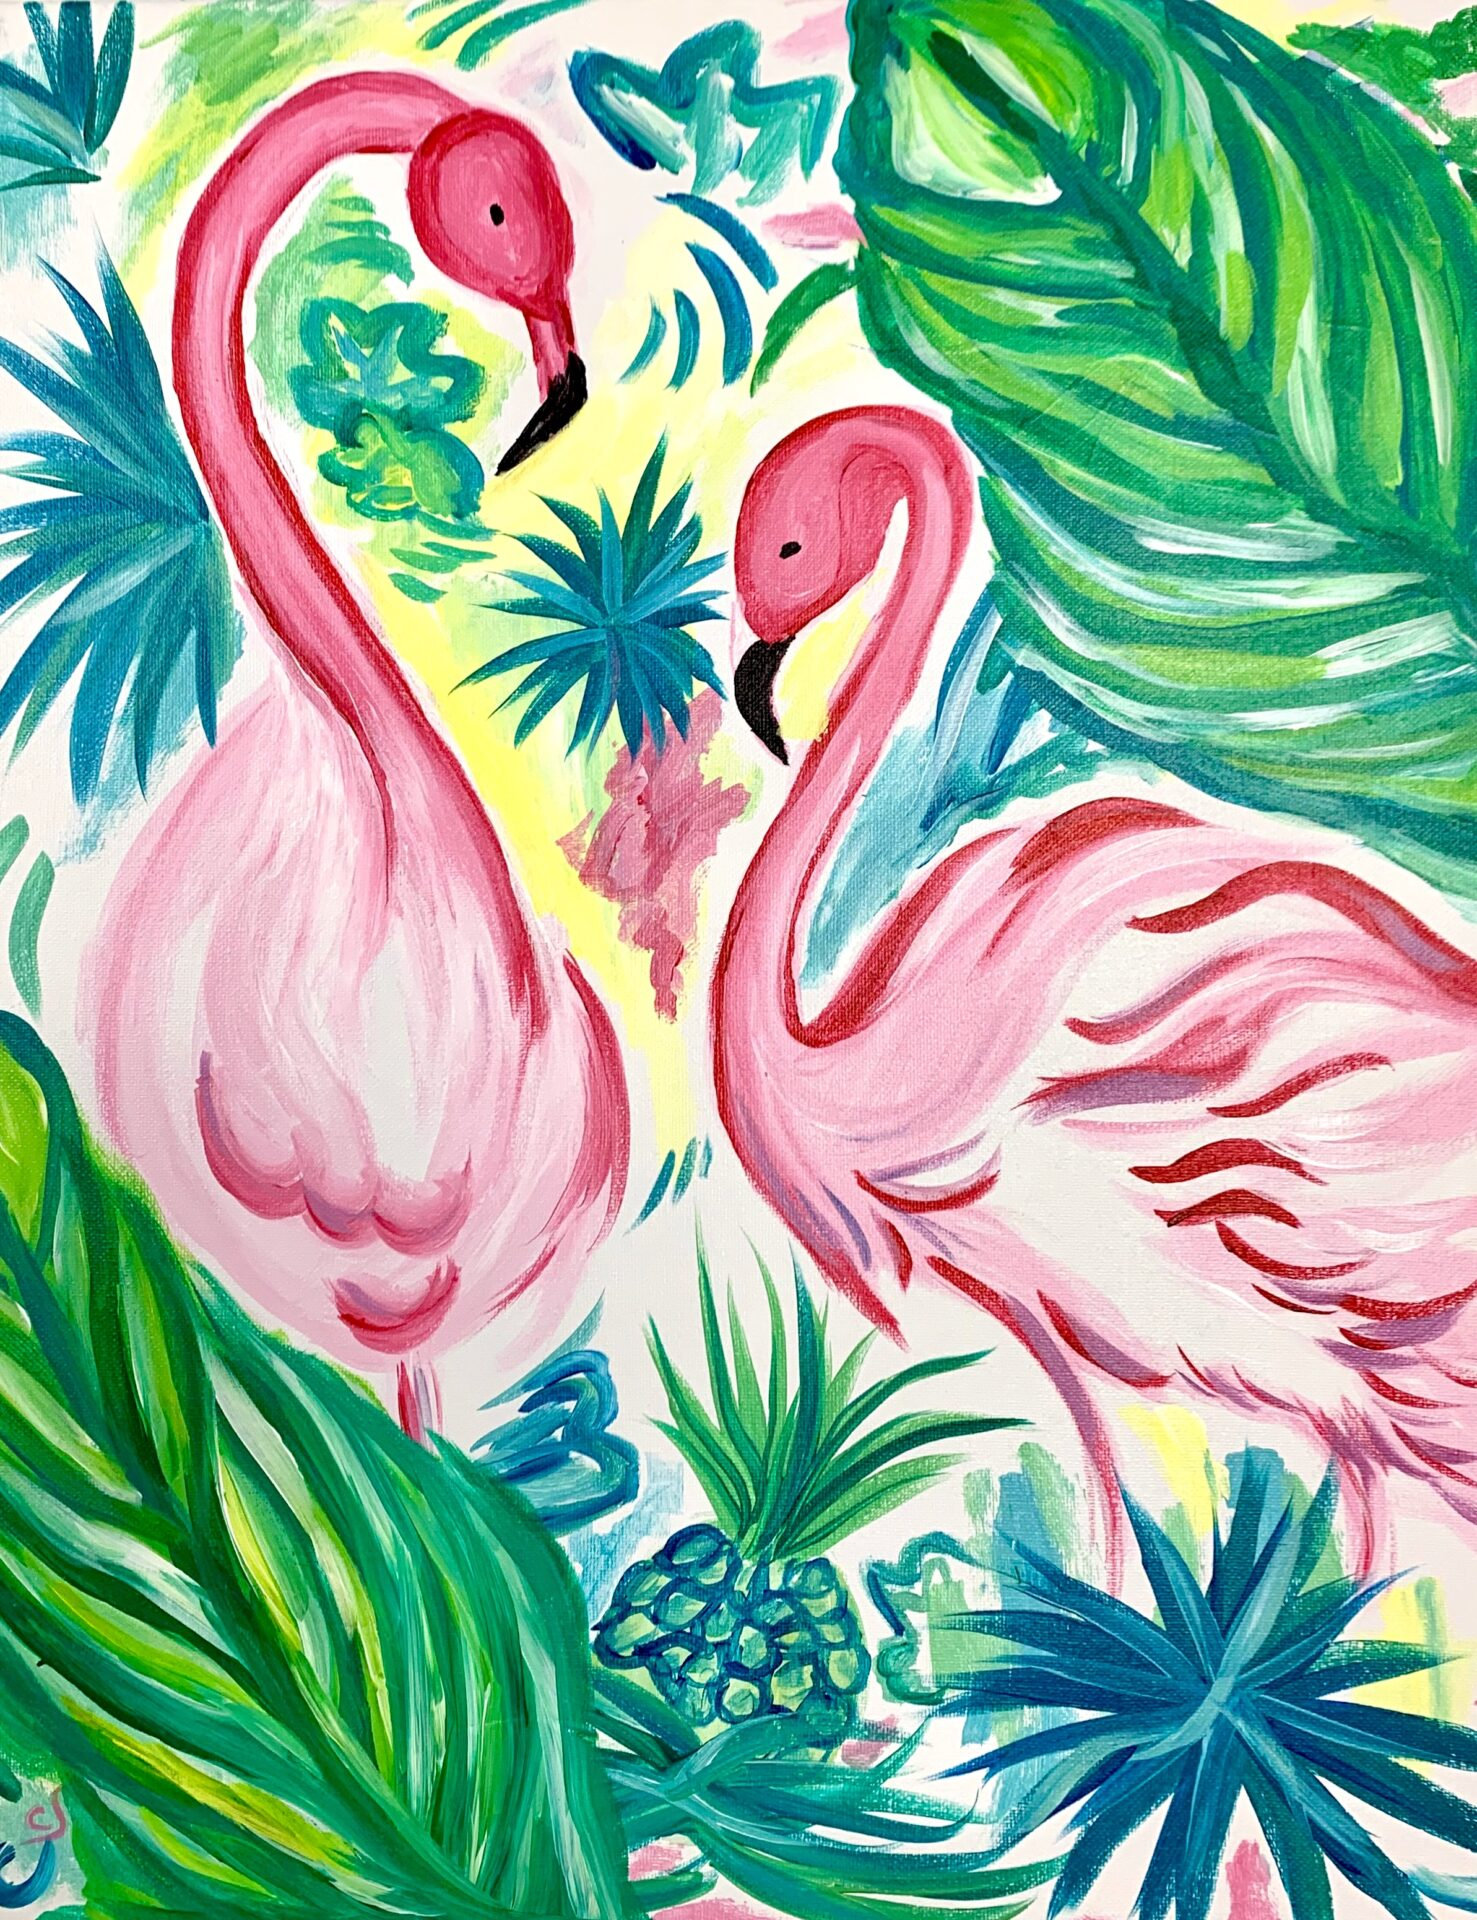 Flamingo's from uptown paint and sip perfect for girls night out ideas and a cute date night Jupiter FL